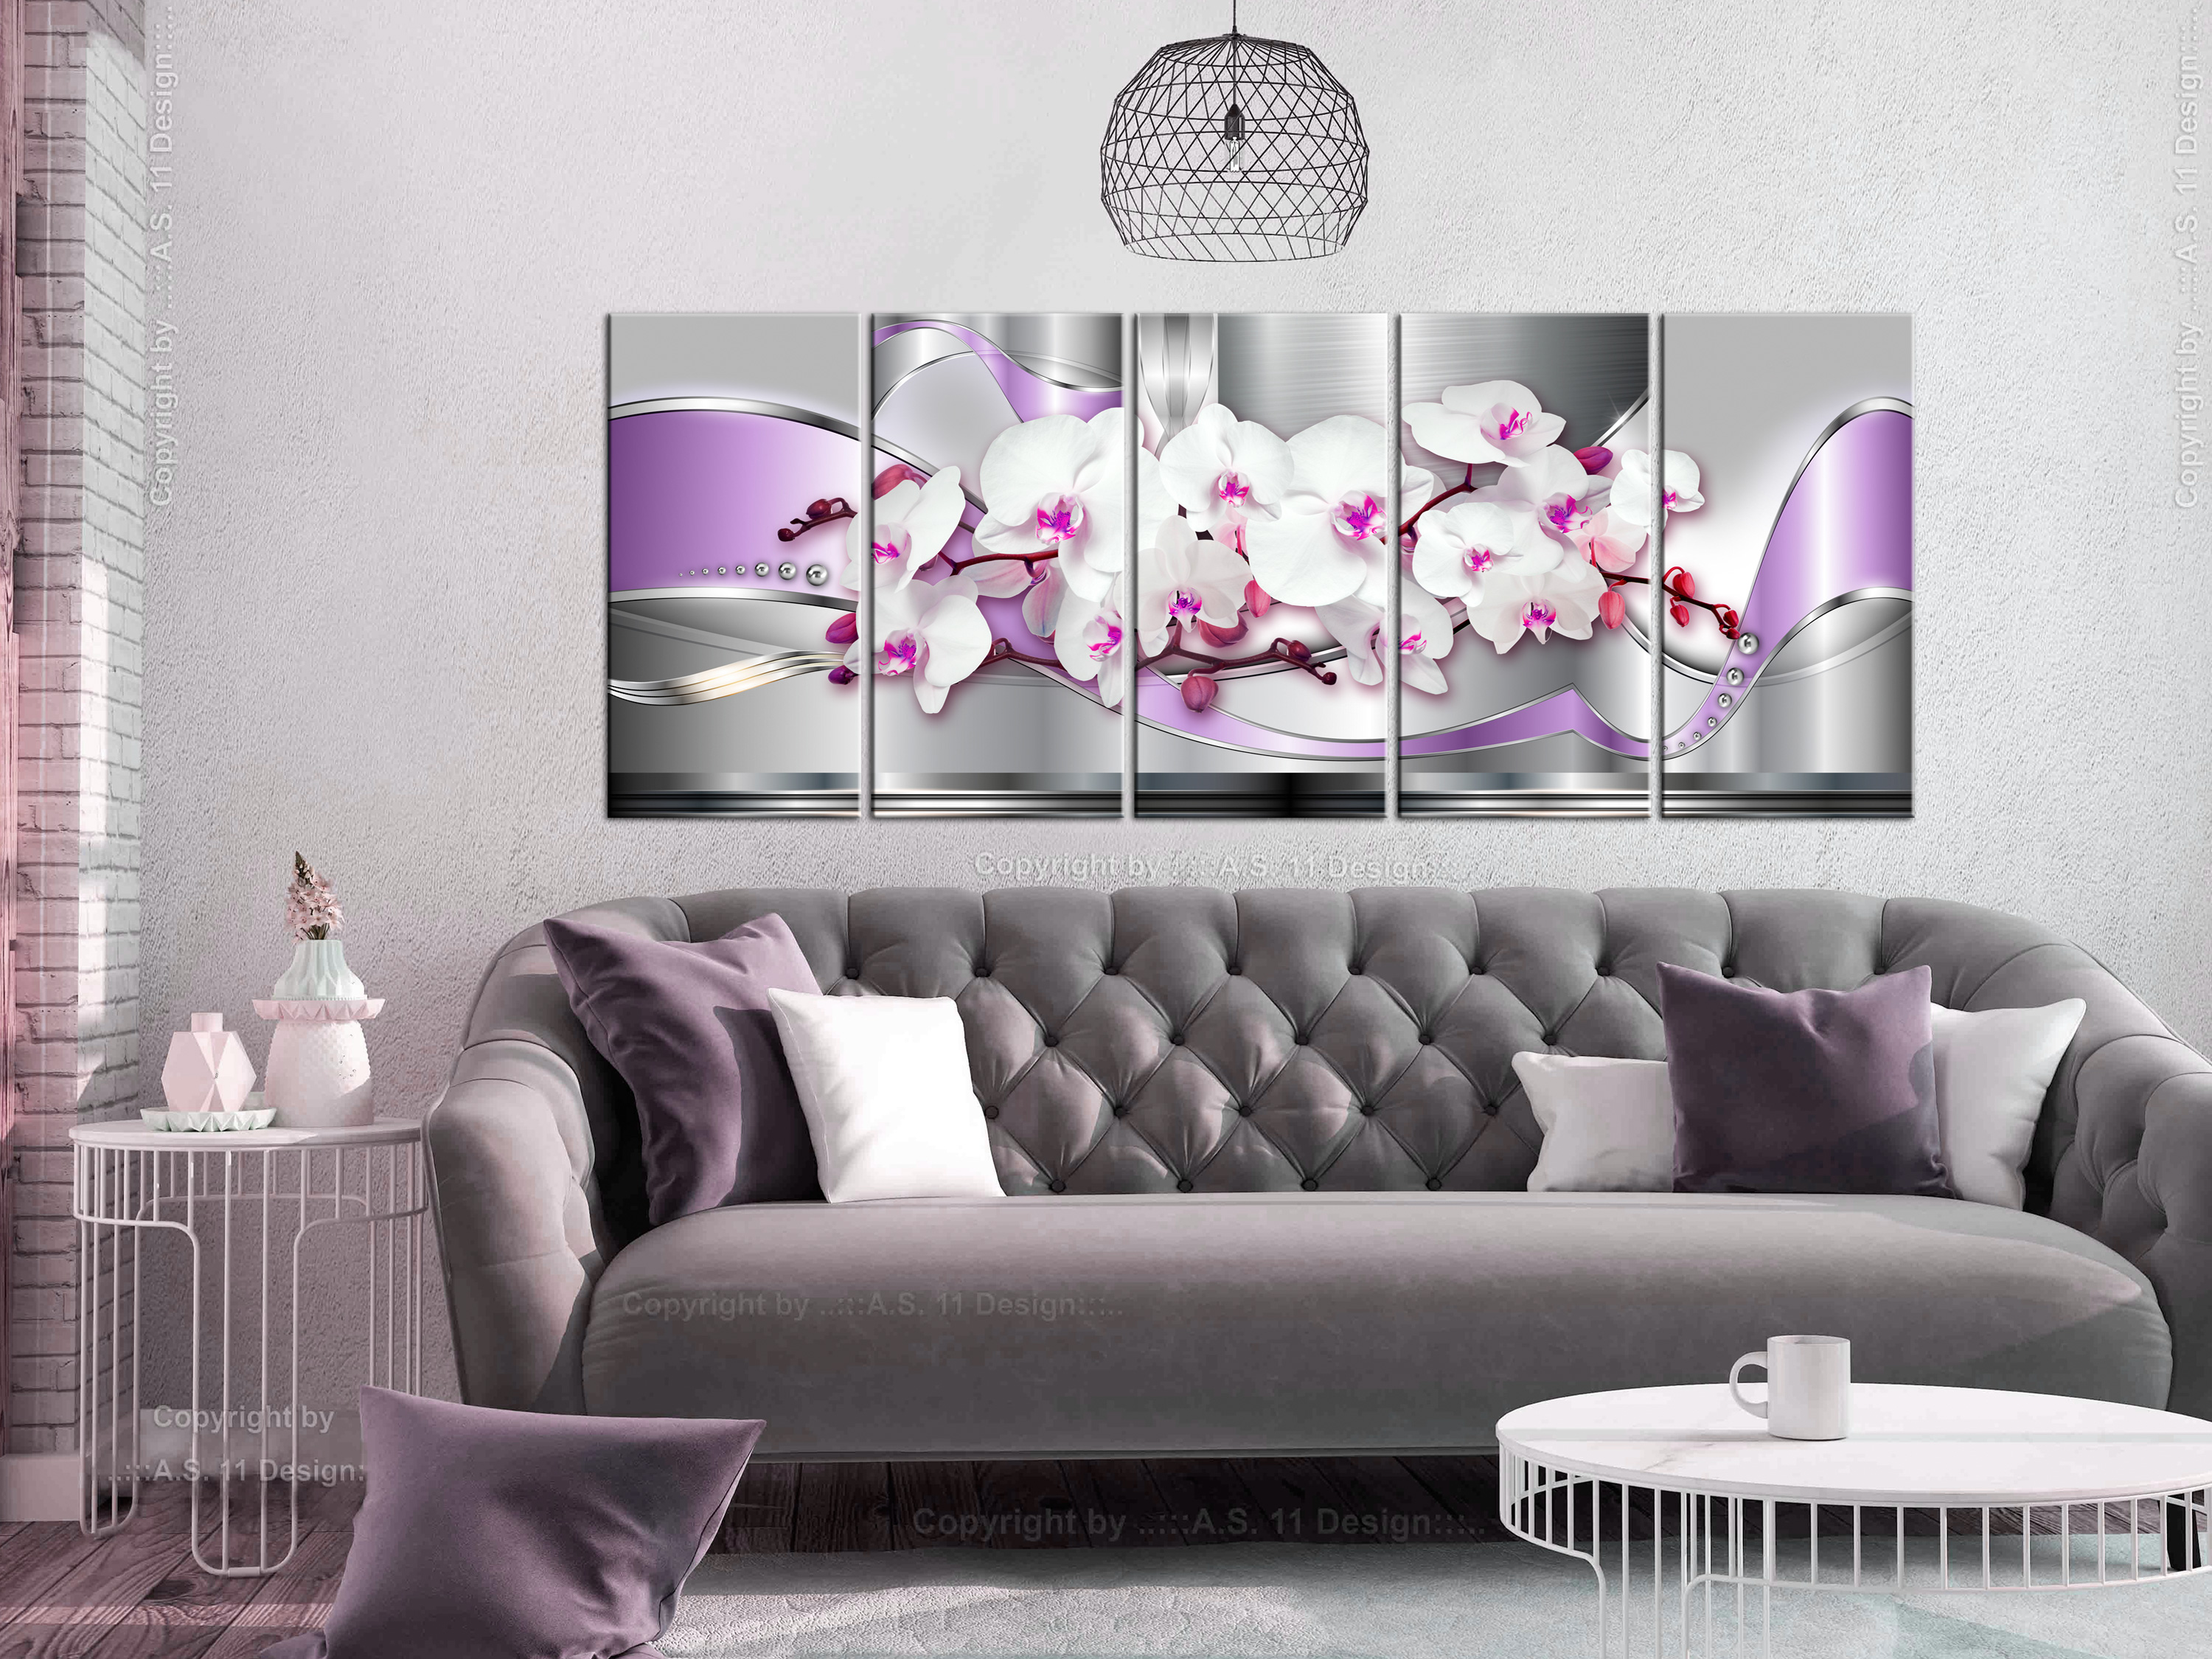 wandbilder xxl blumen orchidee abstraktes leinwand bild wohnzimmer b c 0195 b n ebay. Black Bedroom Furniture Sets. Home Design Ideas